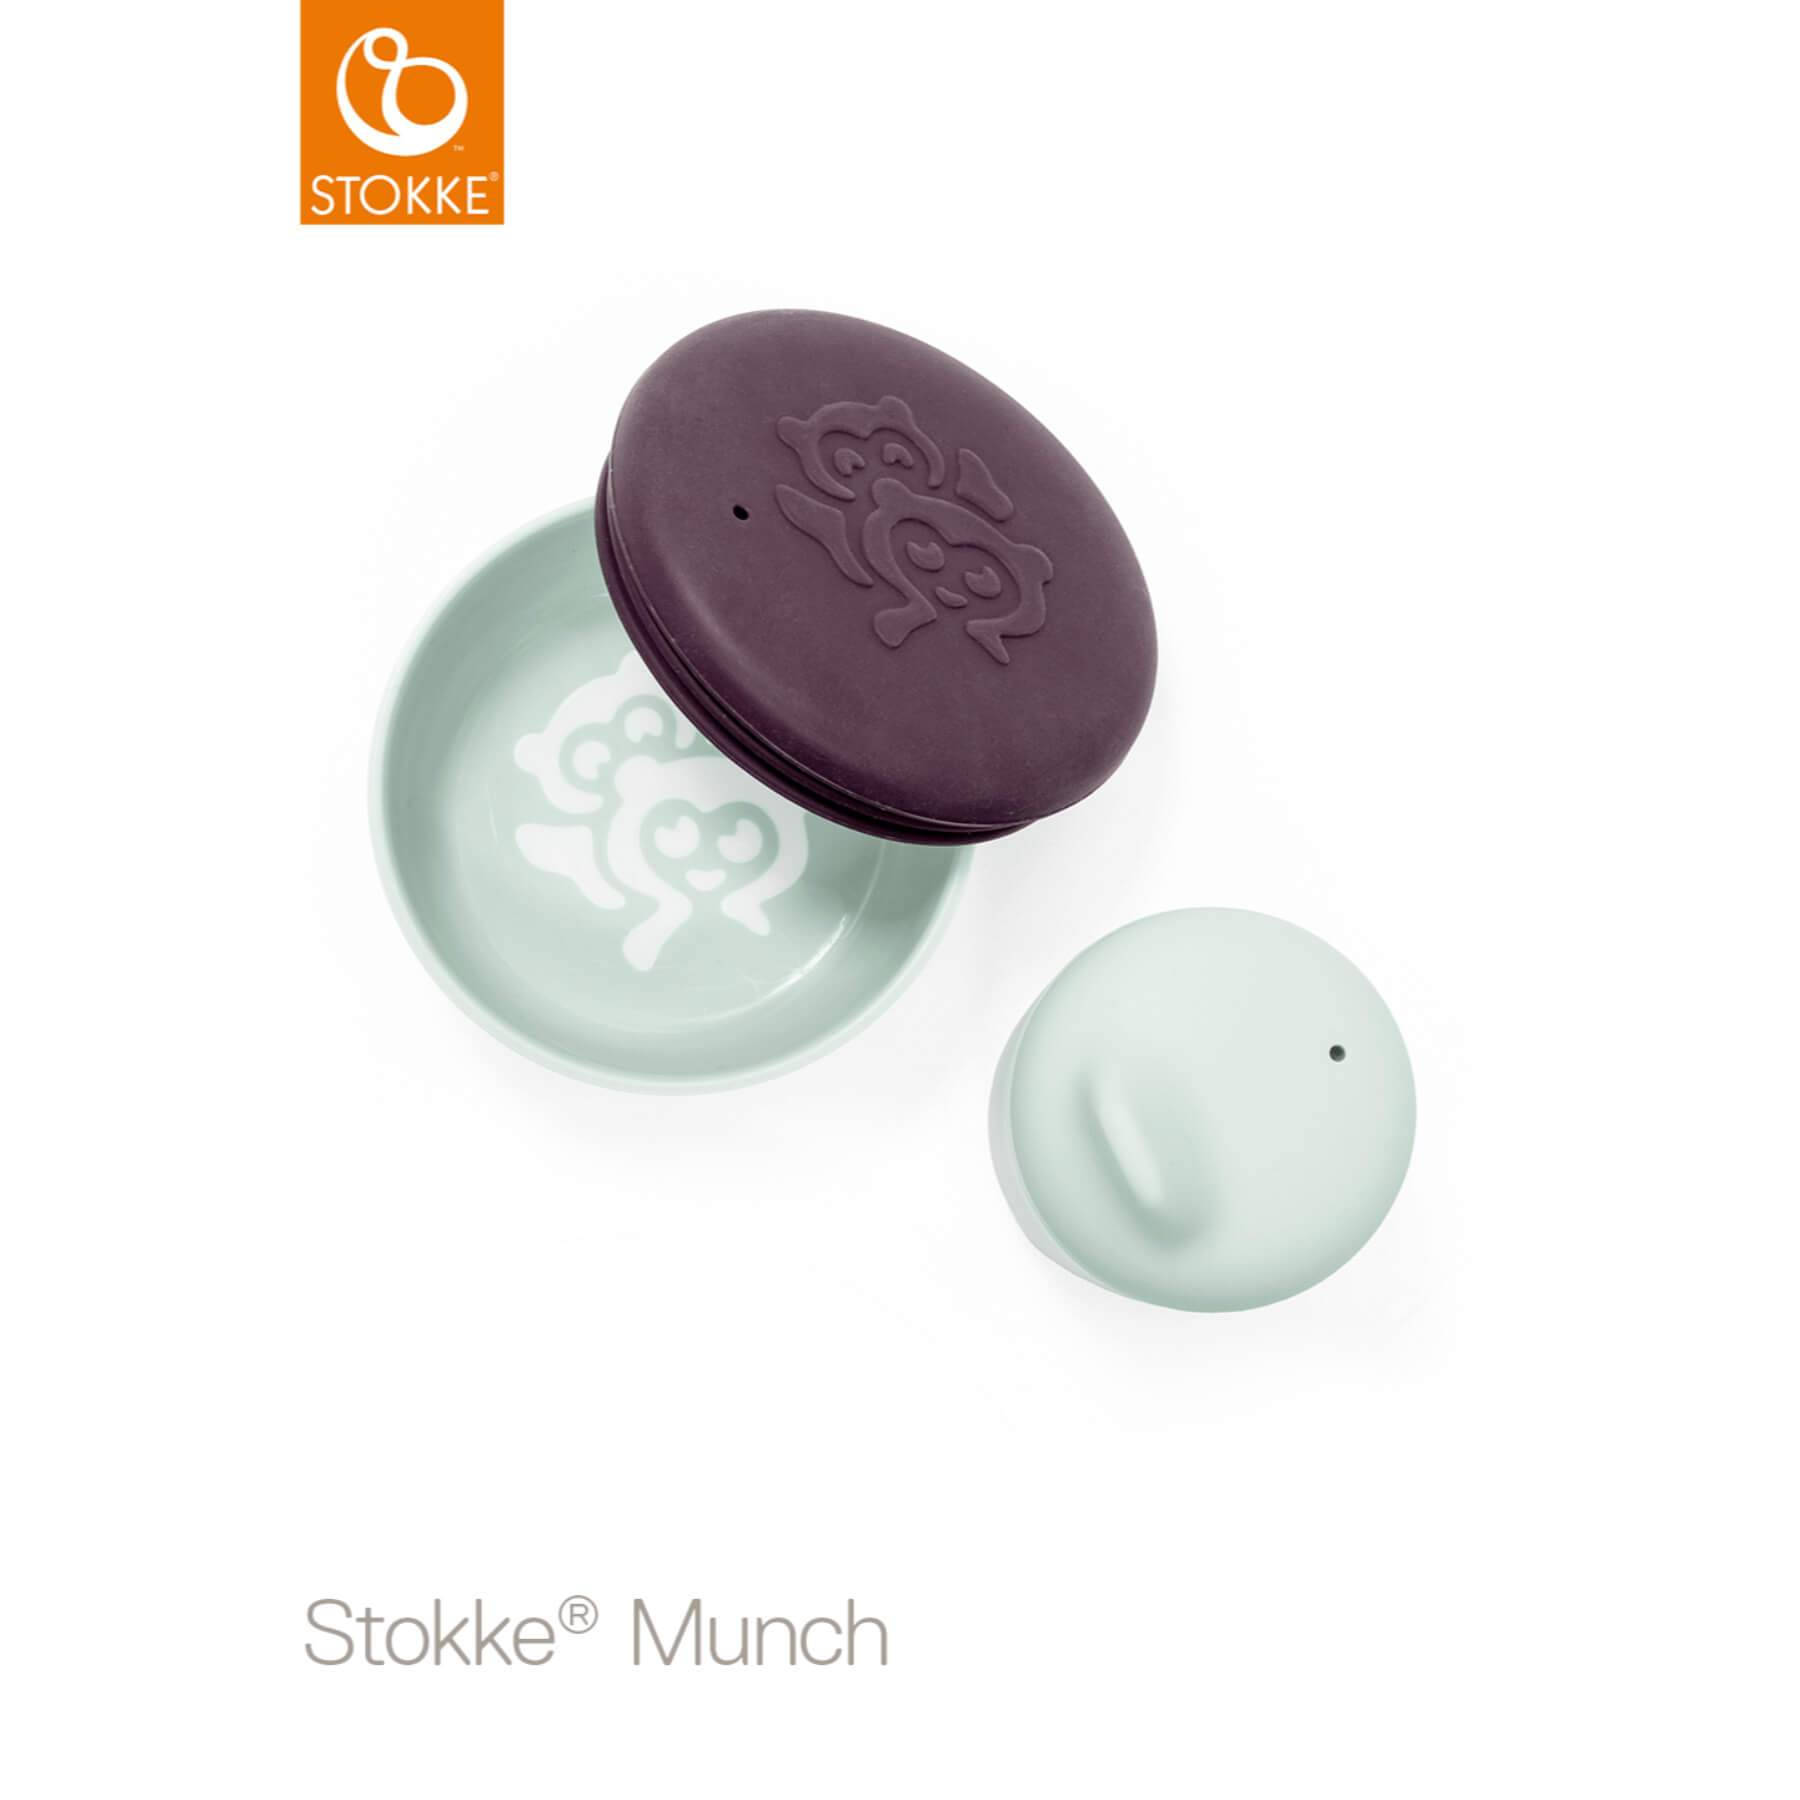 Stokke Munch - Snack Pack